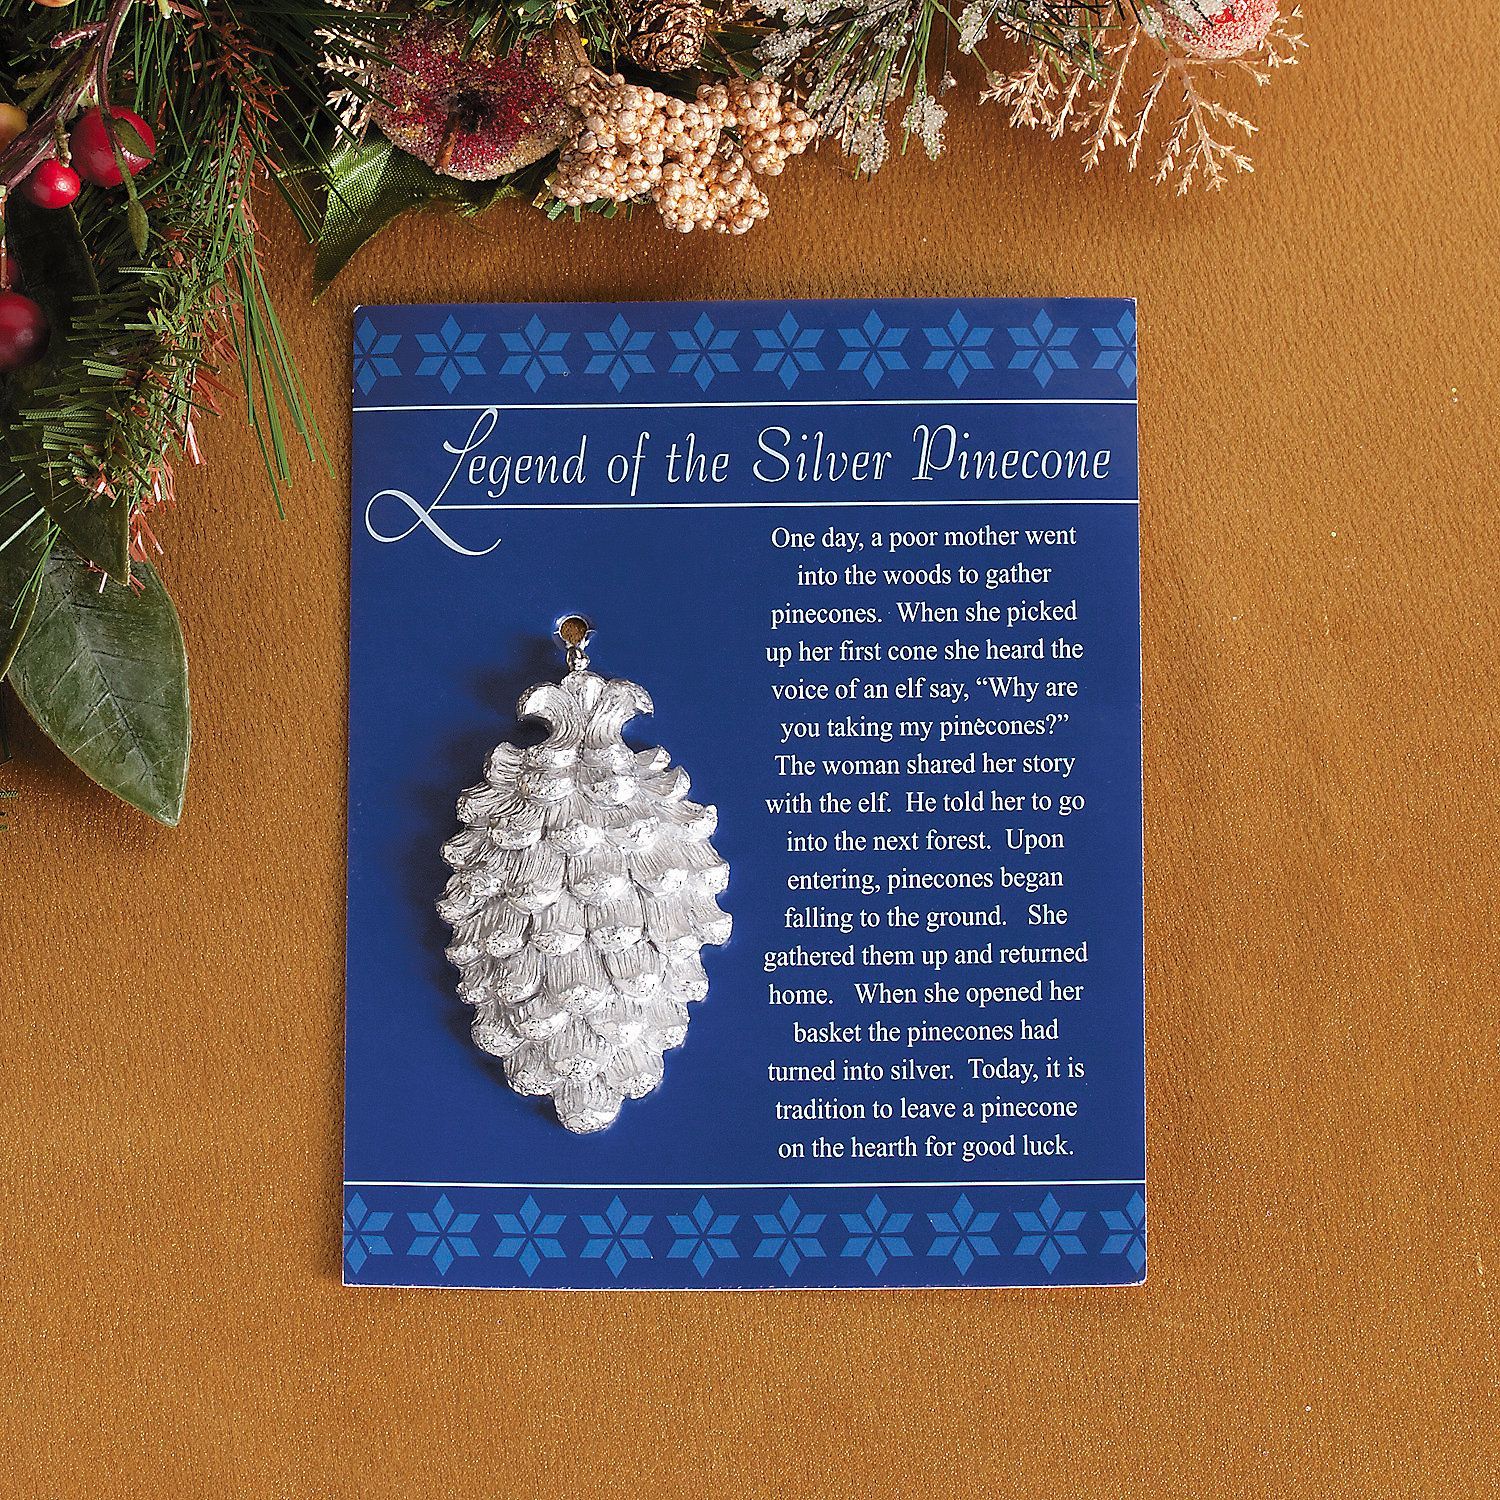 8220 Legend Of The Silver Pinecone 8221 Ornaments Terrysvillage Com Christmas Poems Christmas Ornaments Christmas